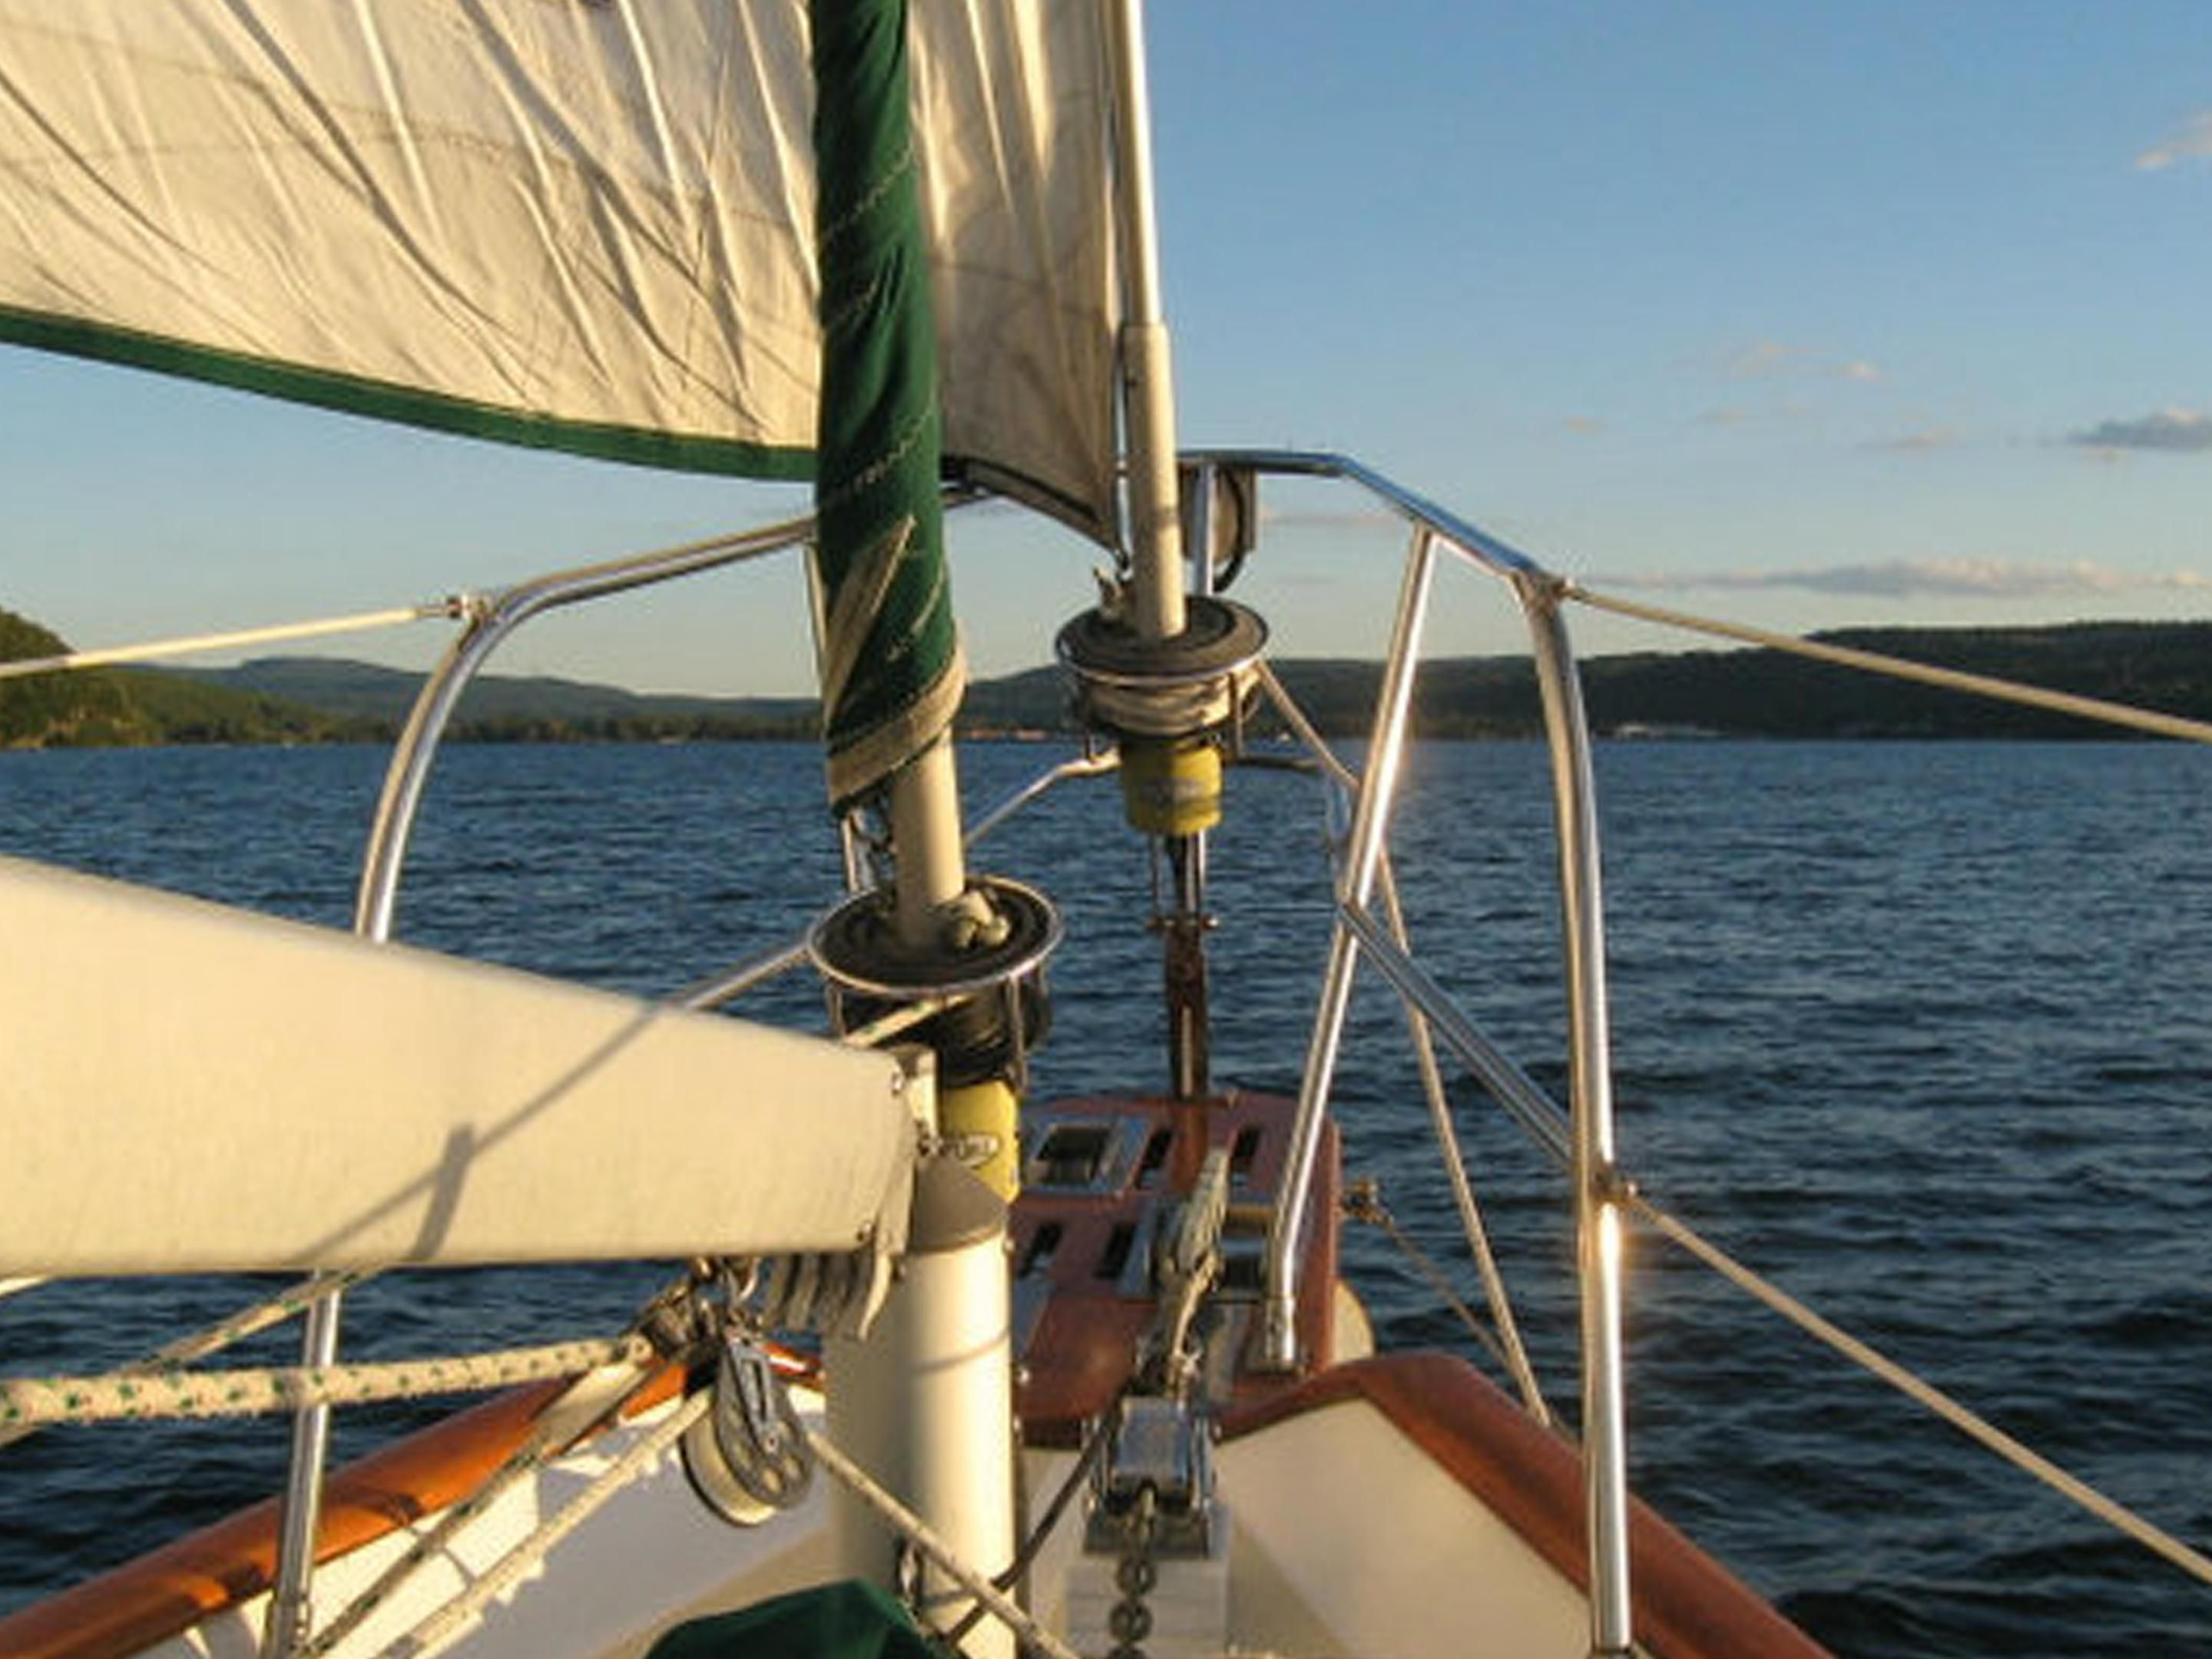 Sailing on Seneca Lake, Watkins Glen